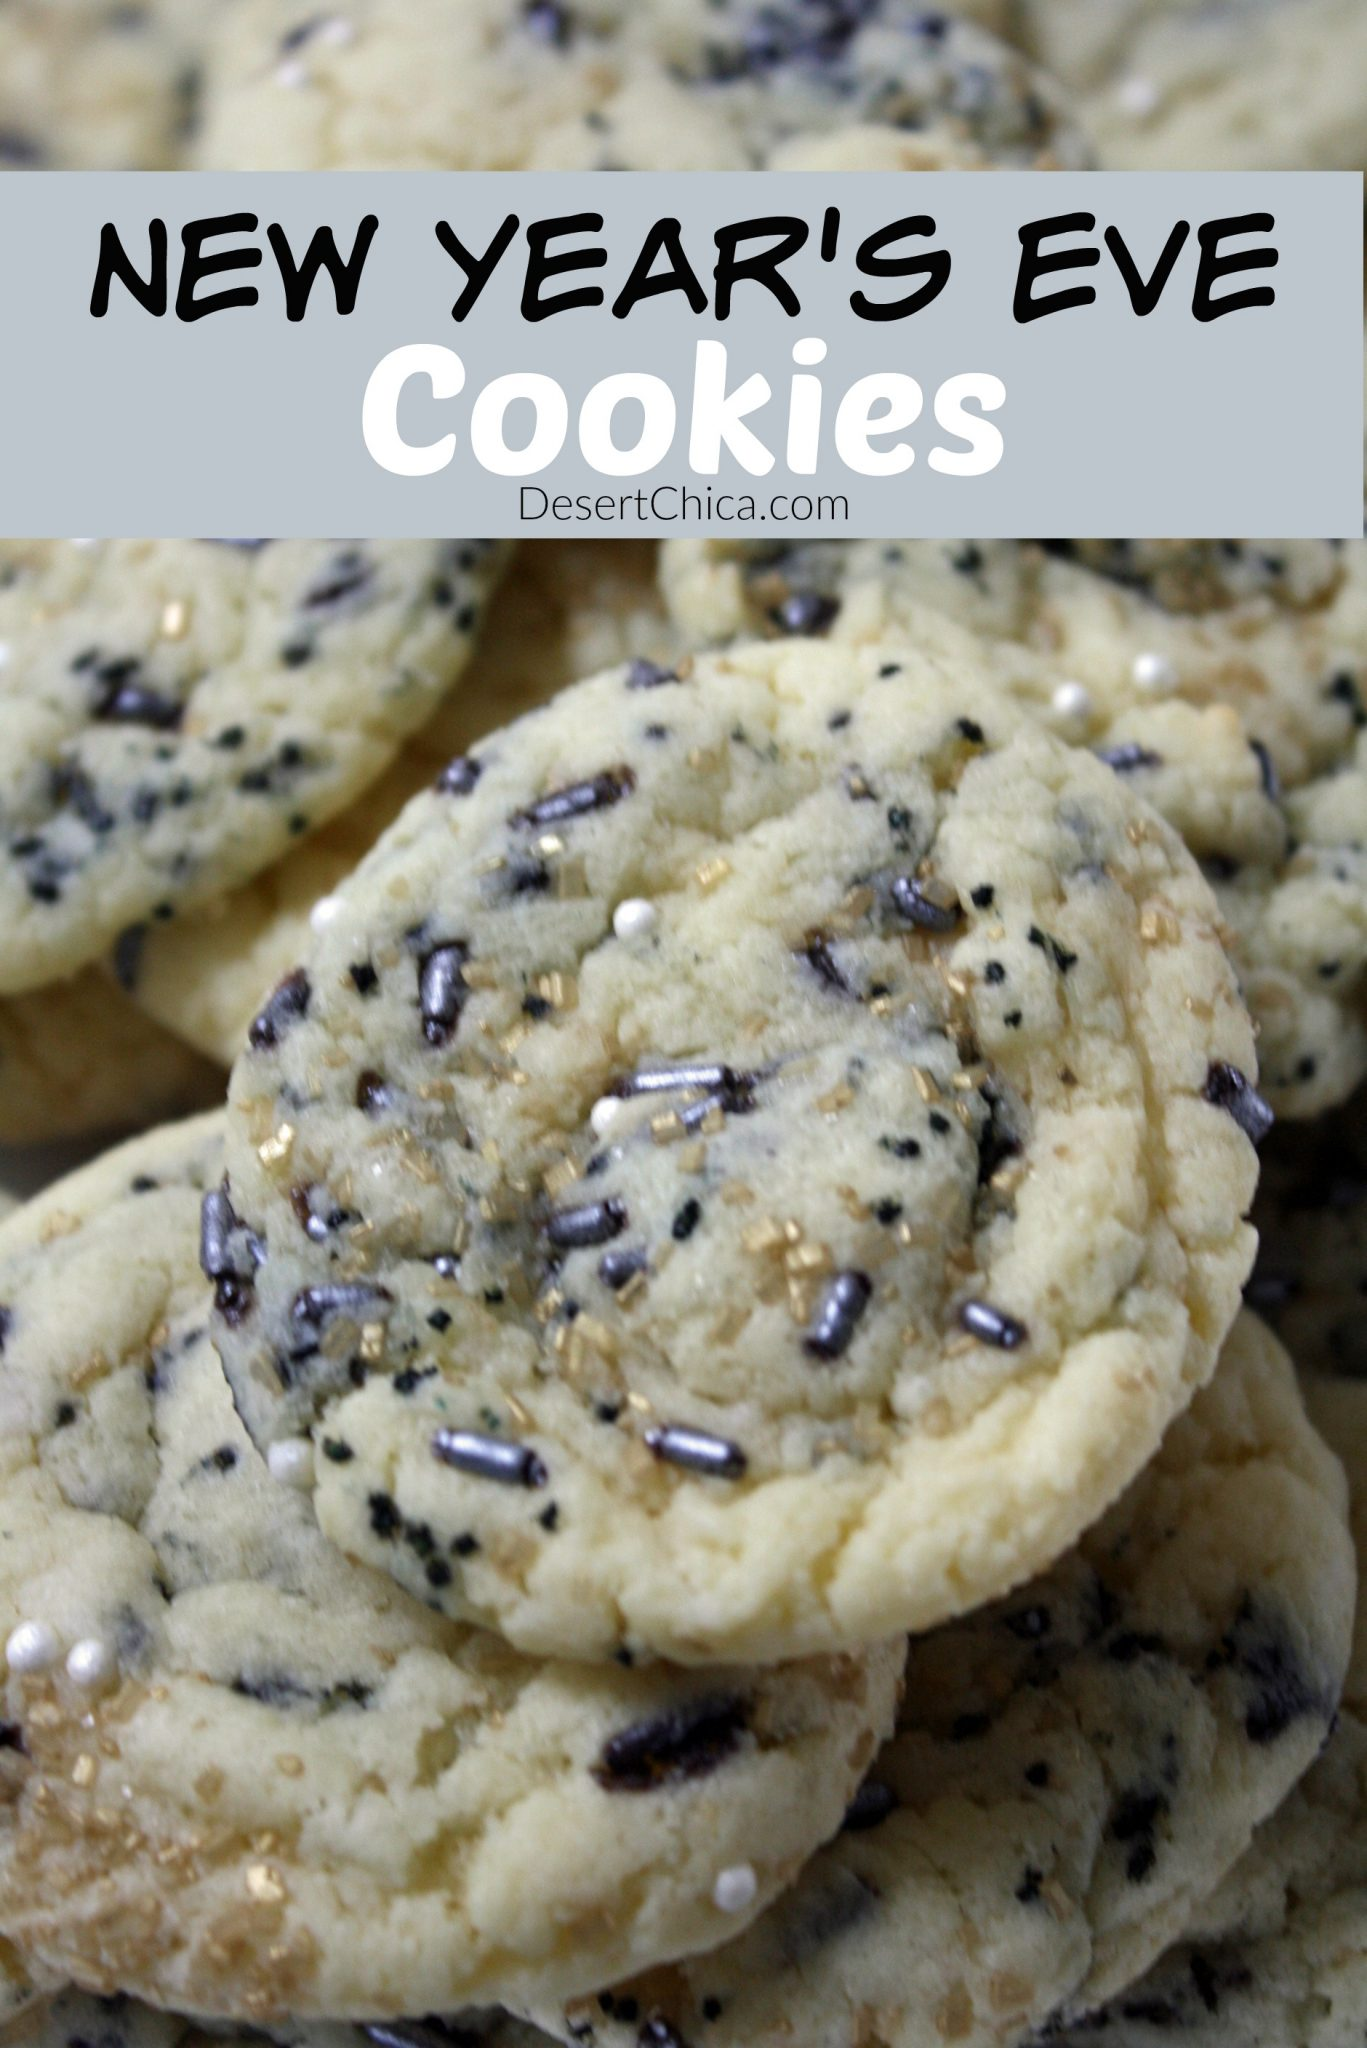 Looking for an easy New Year's Even dessert? How about these cake mix New Year's Eve Cookies. So easy with just a couple of ingredients!